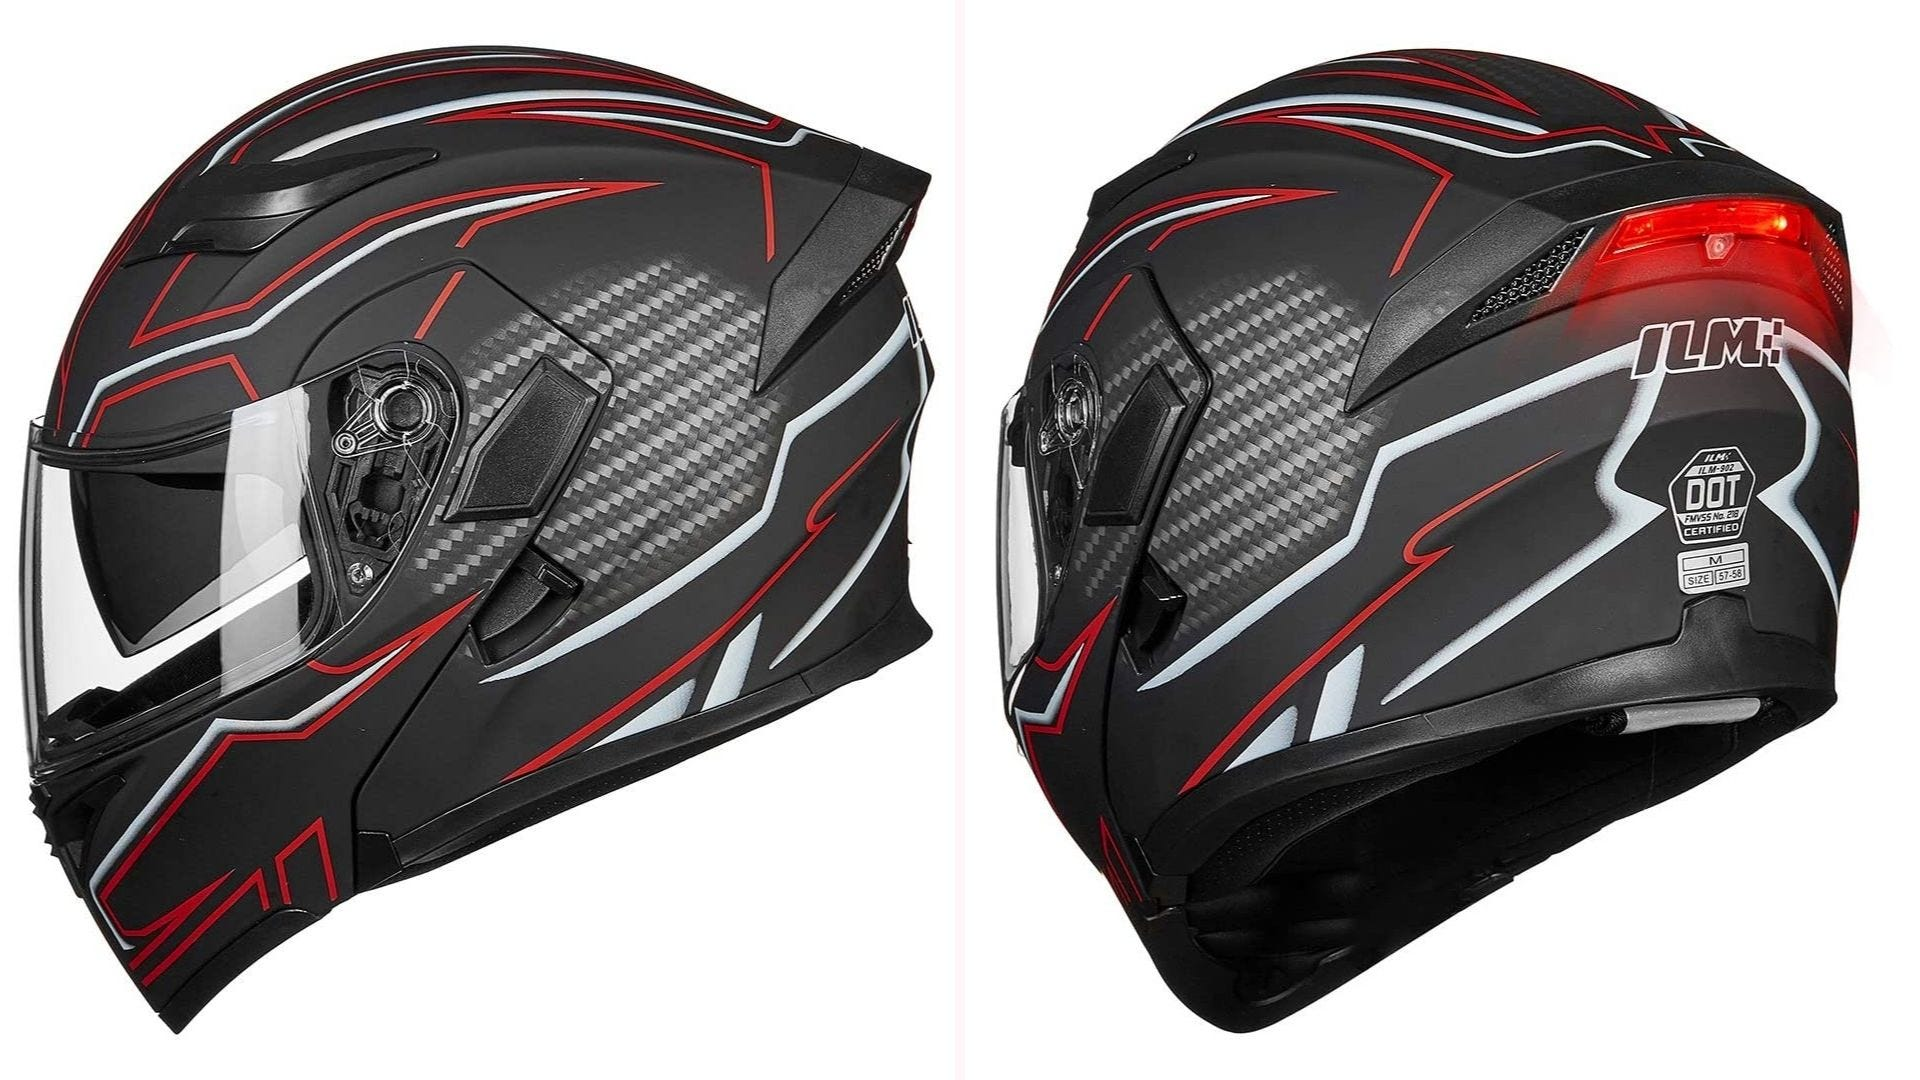 A side and back view of a black full-face helmet with red and white geometric patterns with a red light located on the back of the helmet.